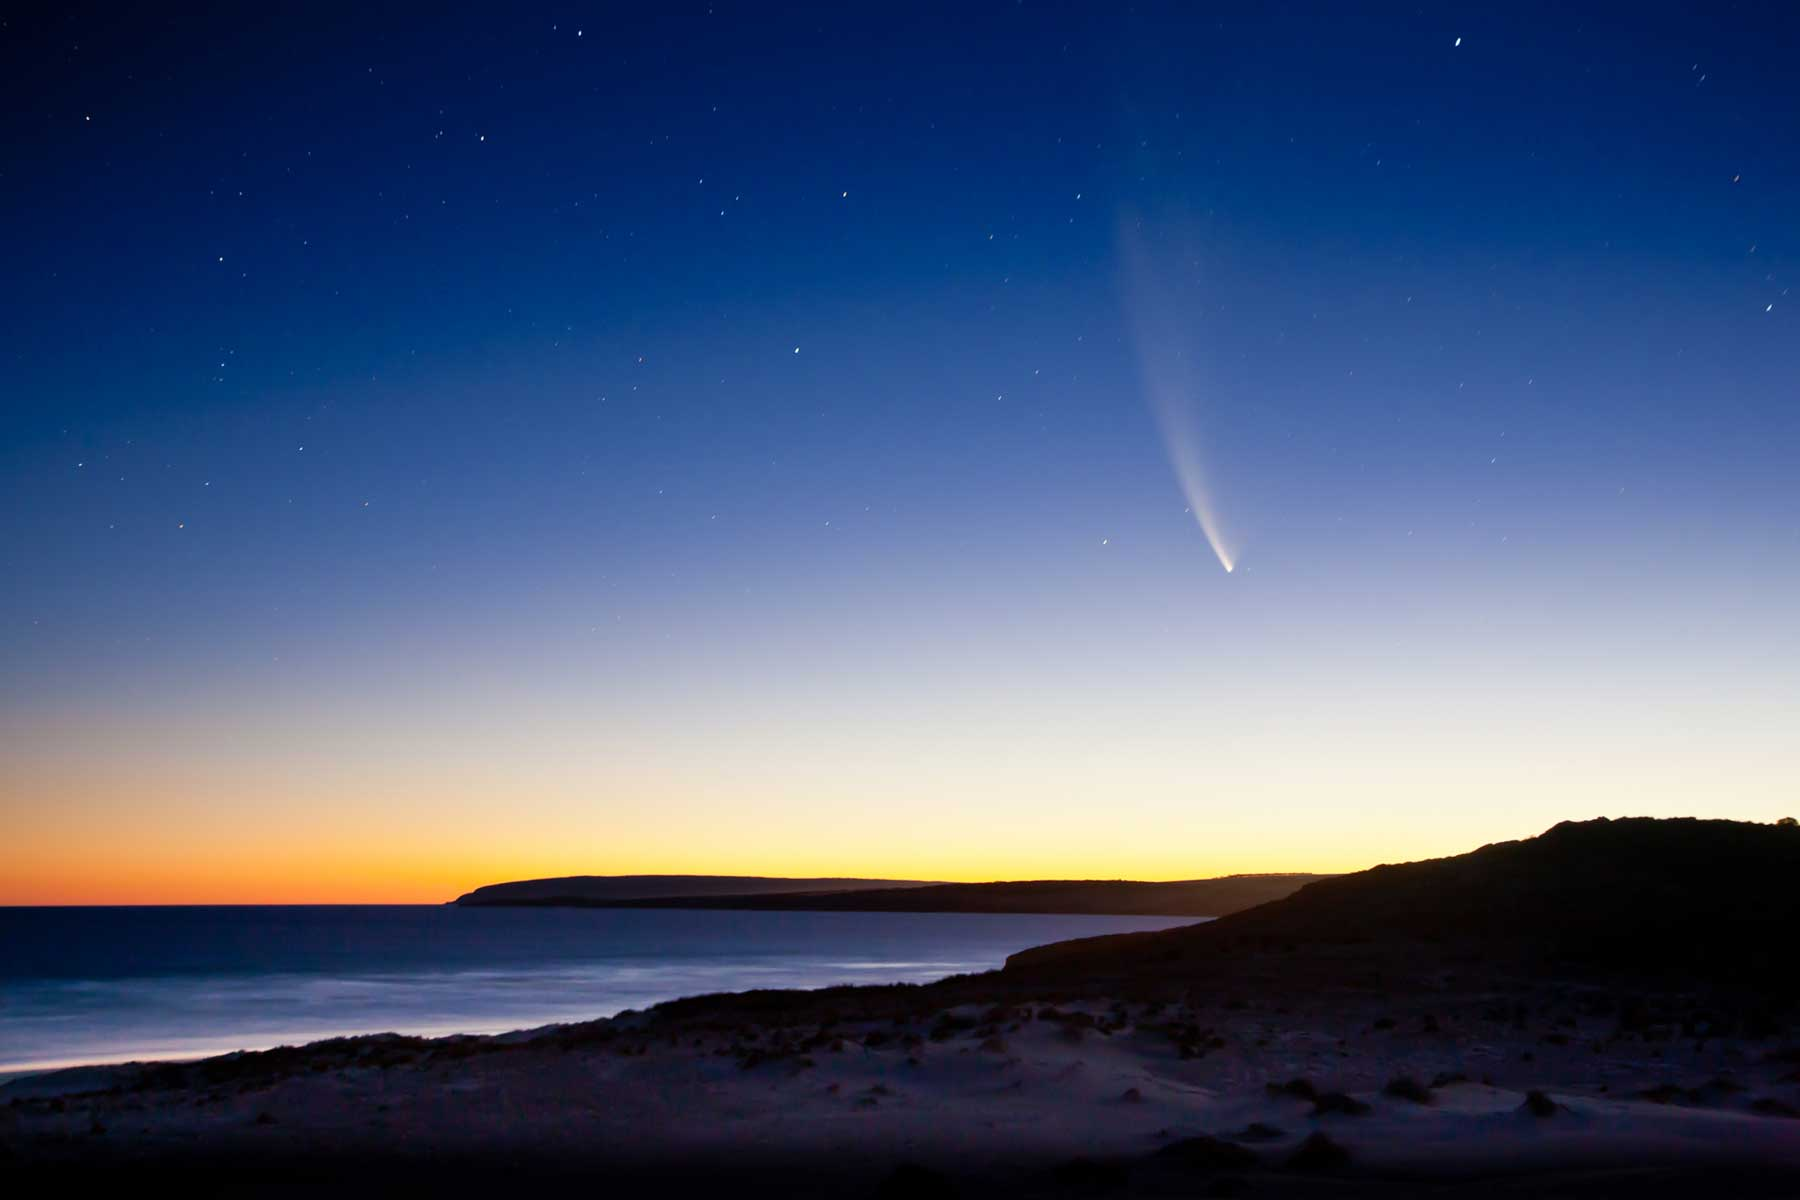 McNaughts Comet over Sleaford Bay, Eyre Peninsula, South Australia in 2007.